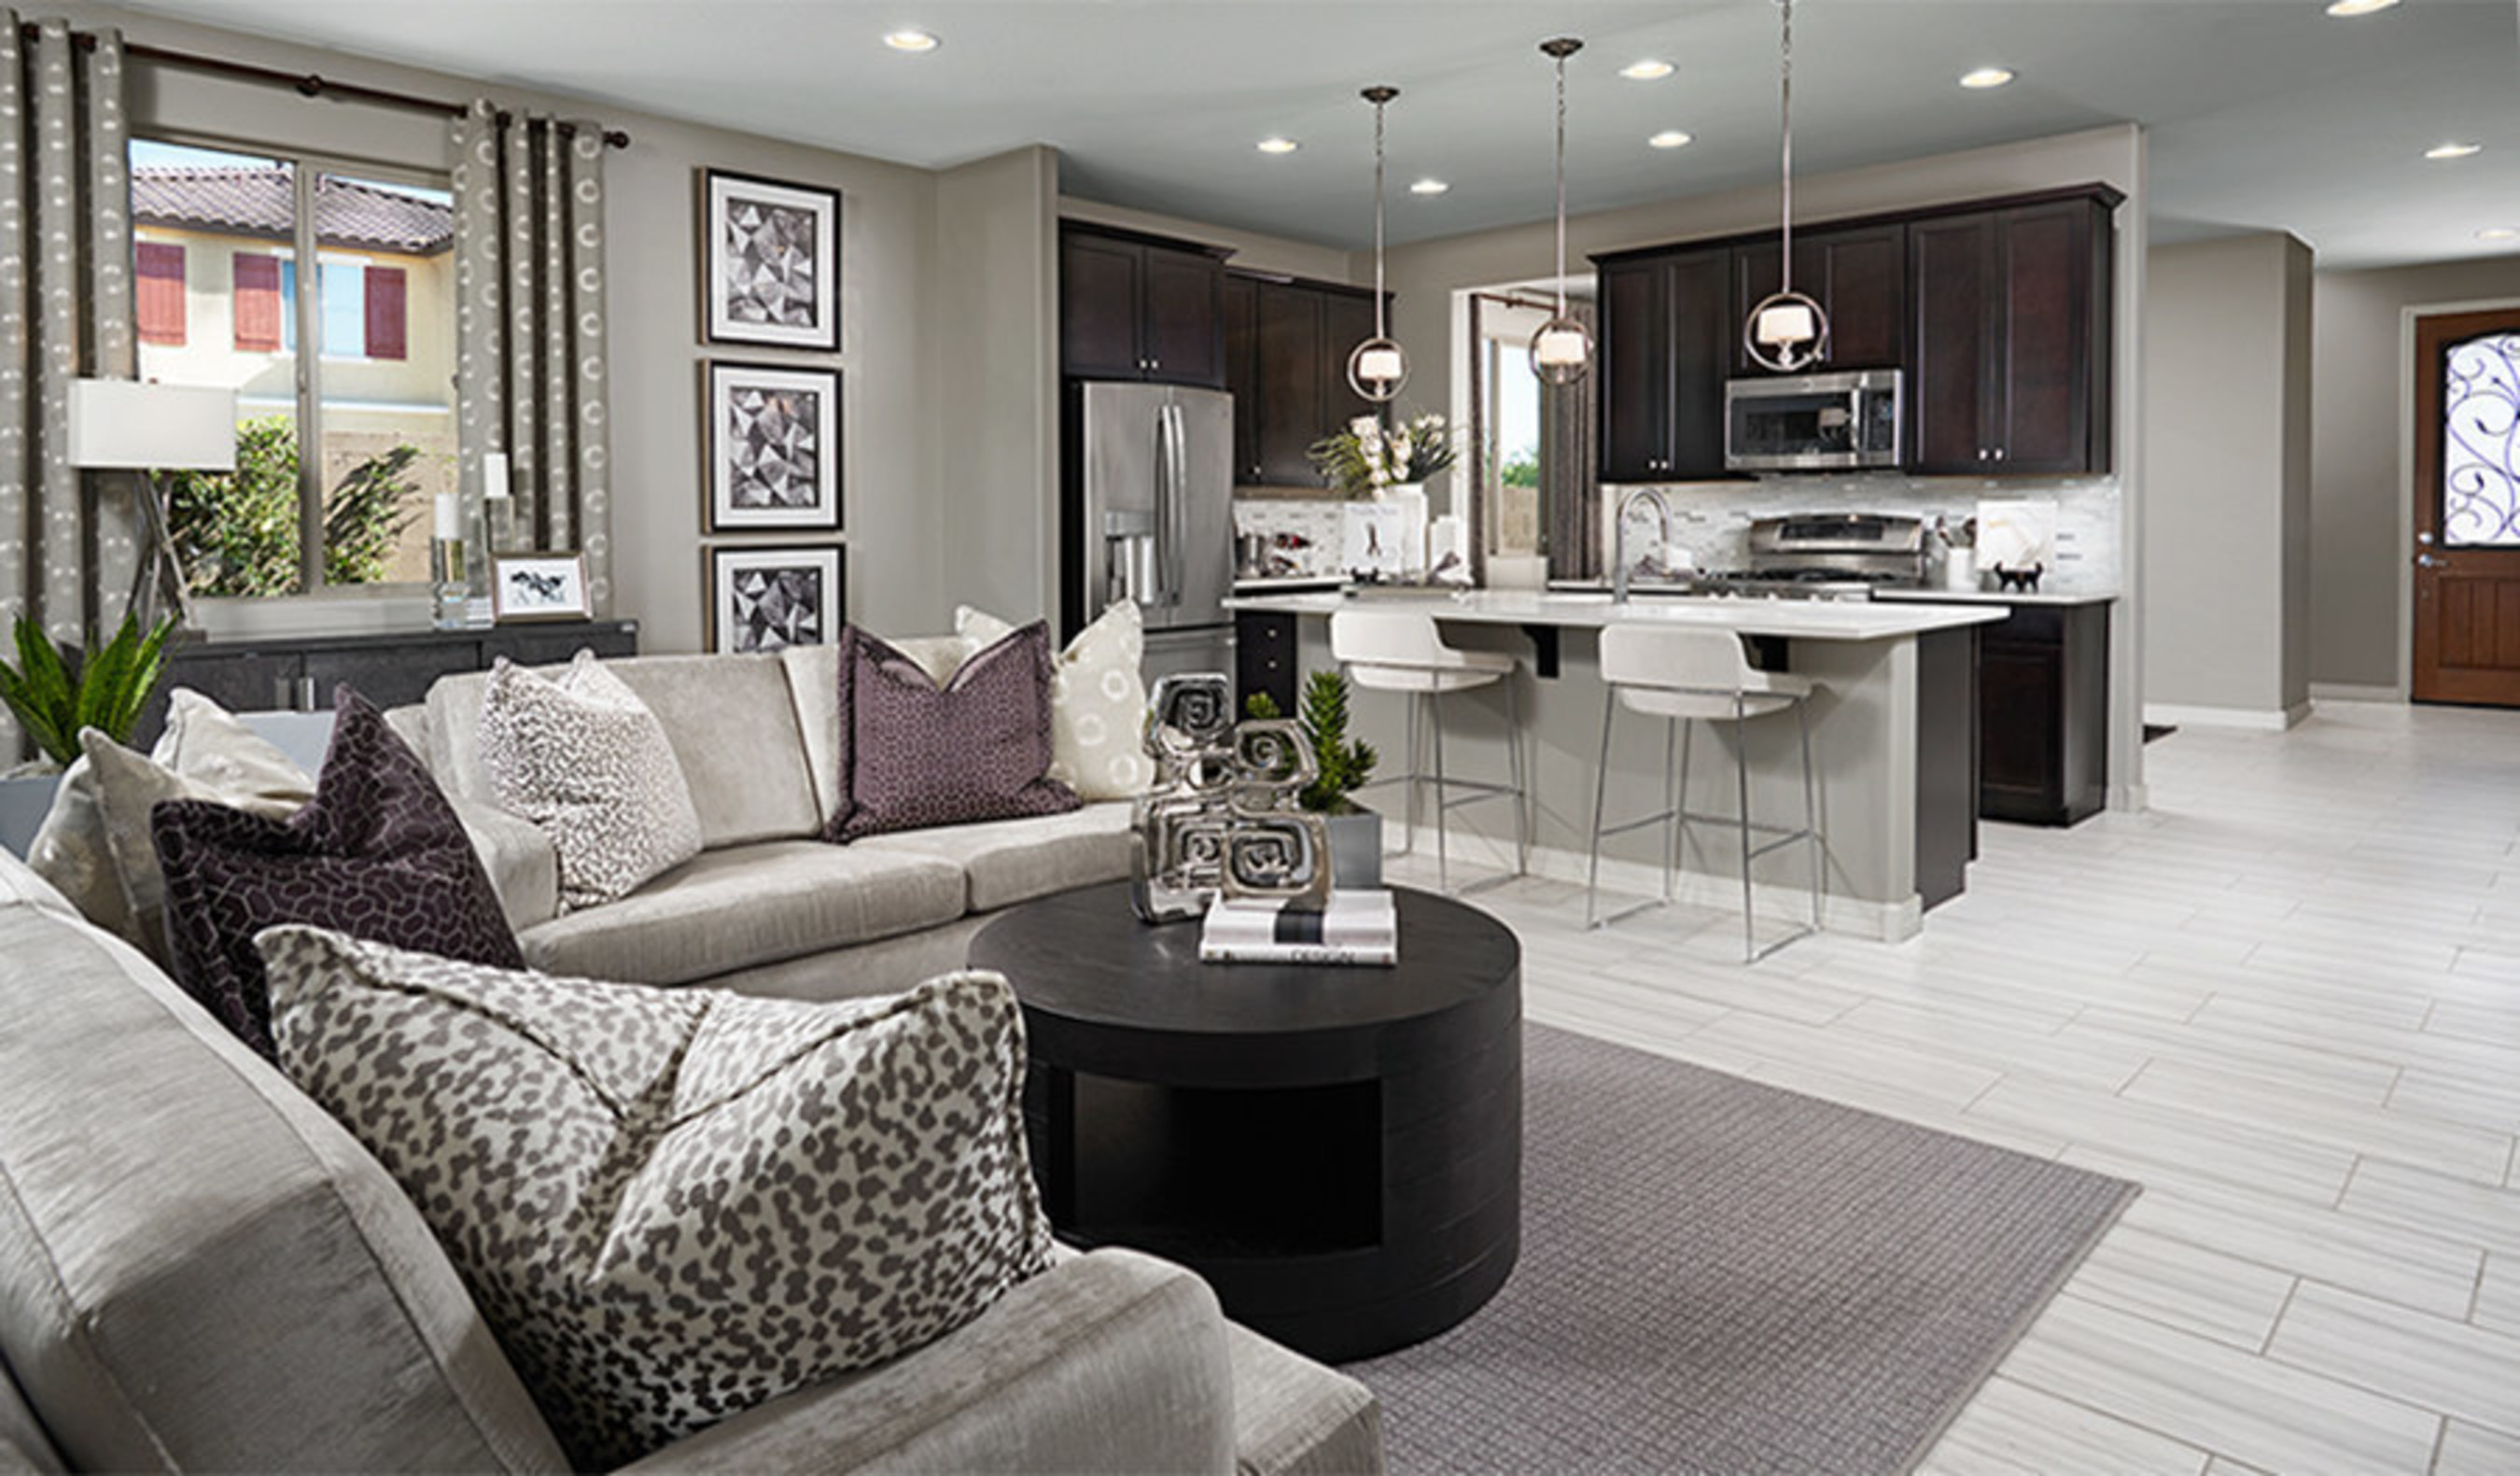 The Amethyst plan at Seasons at Traditions boasts an open kitchen and great room.